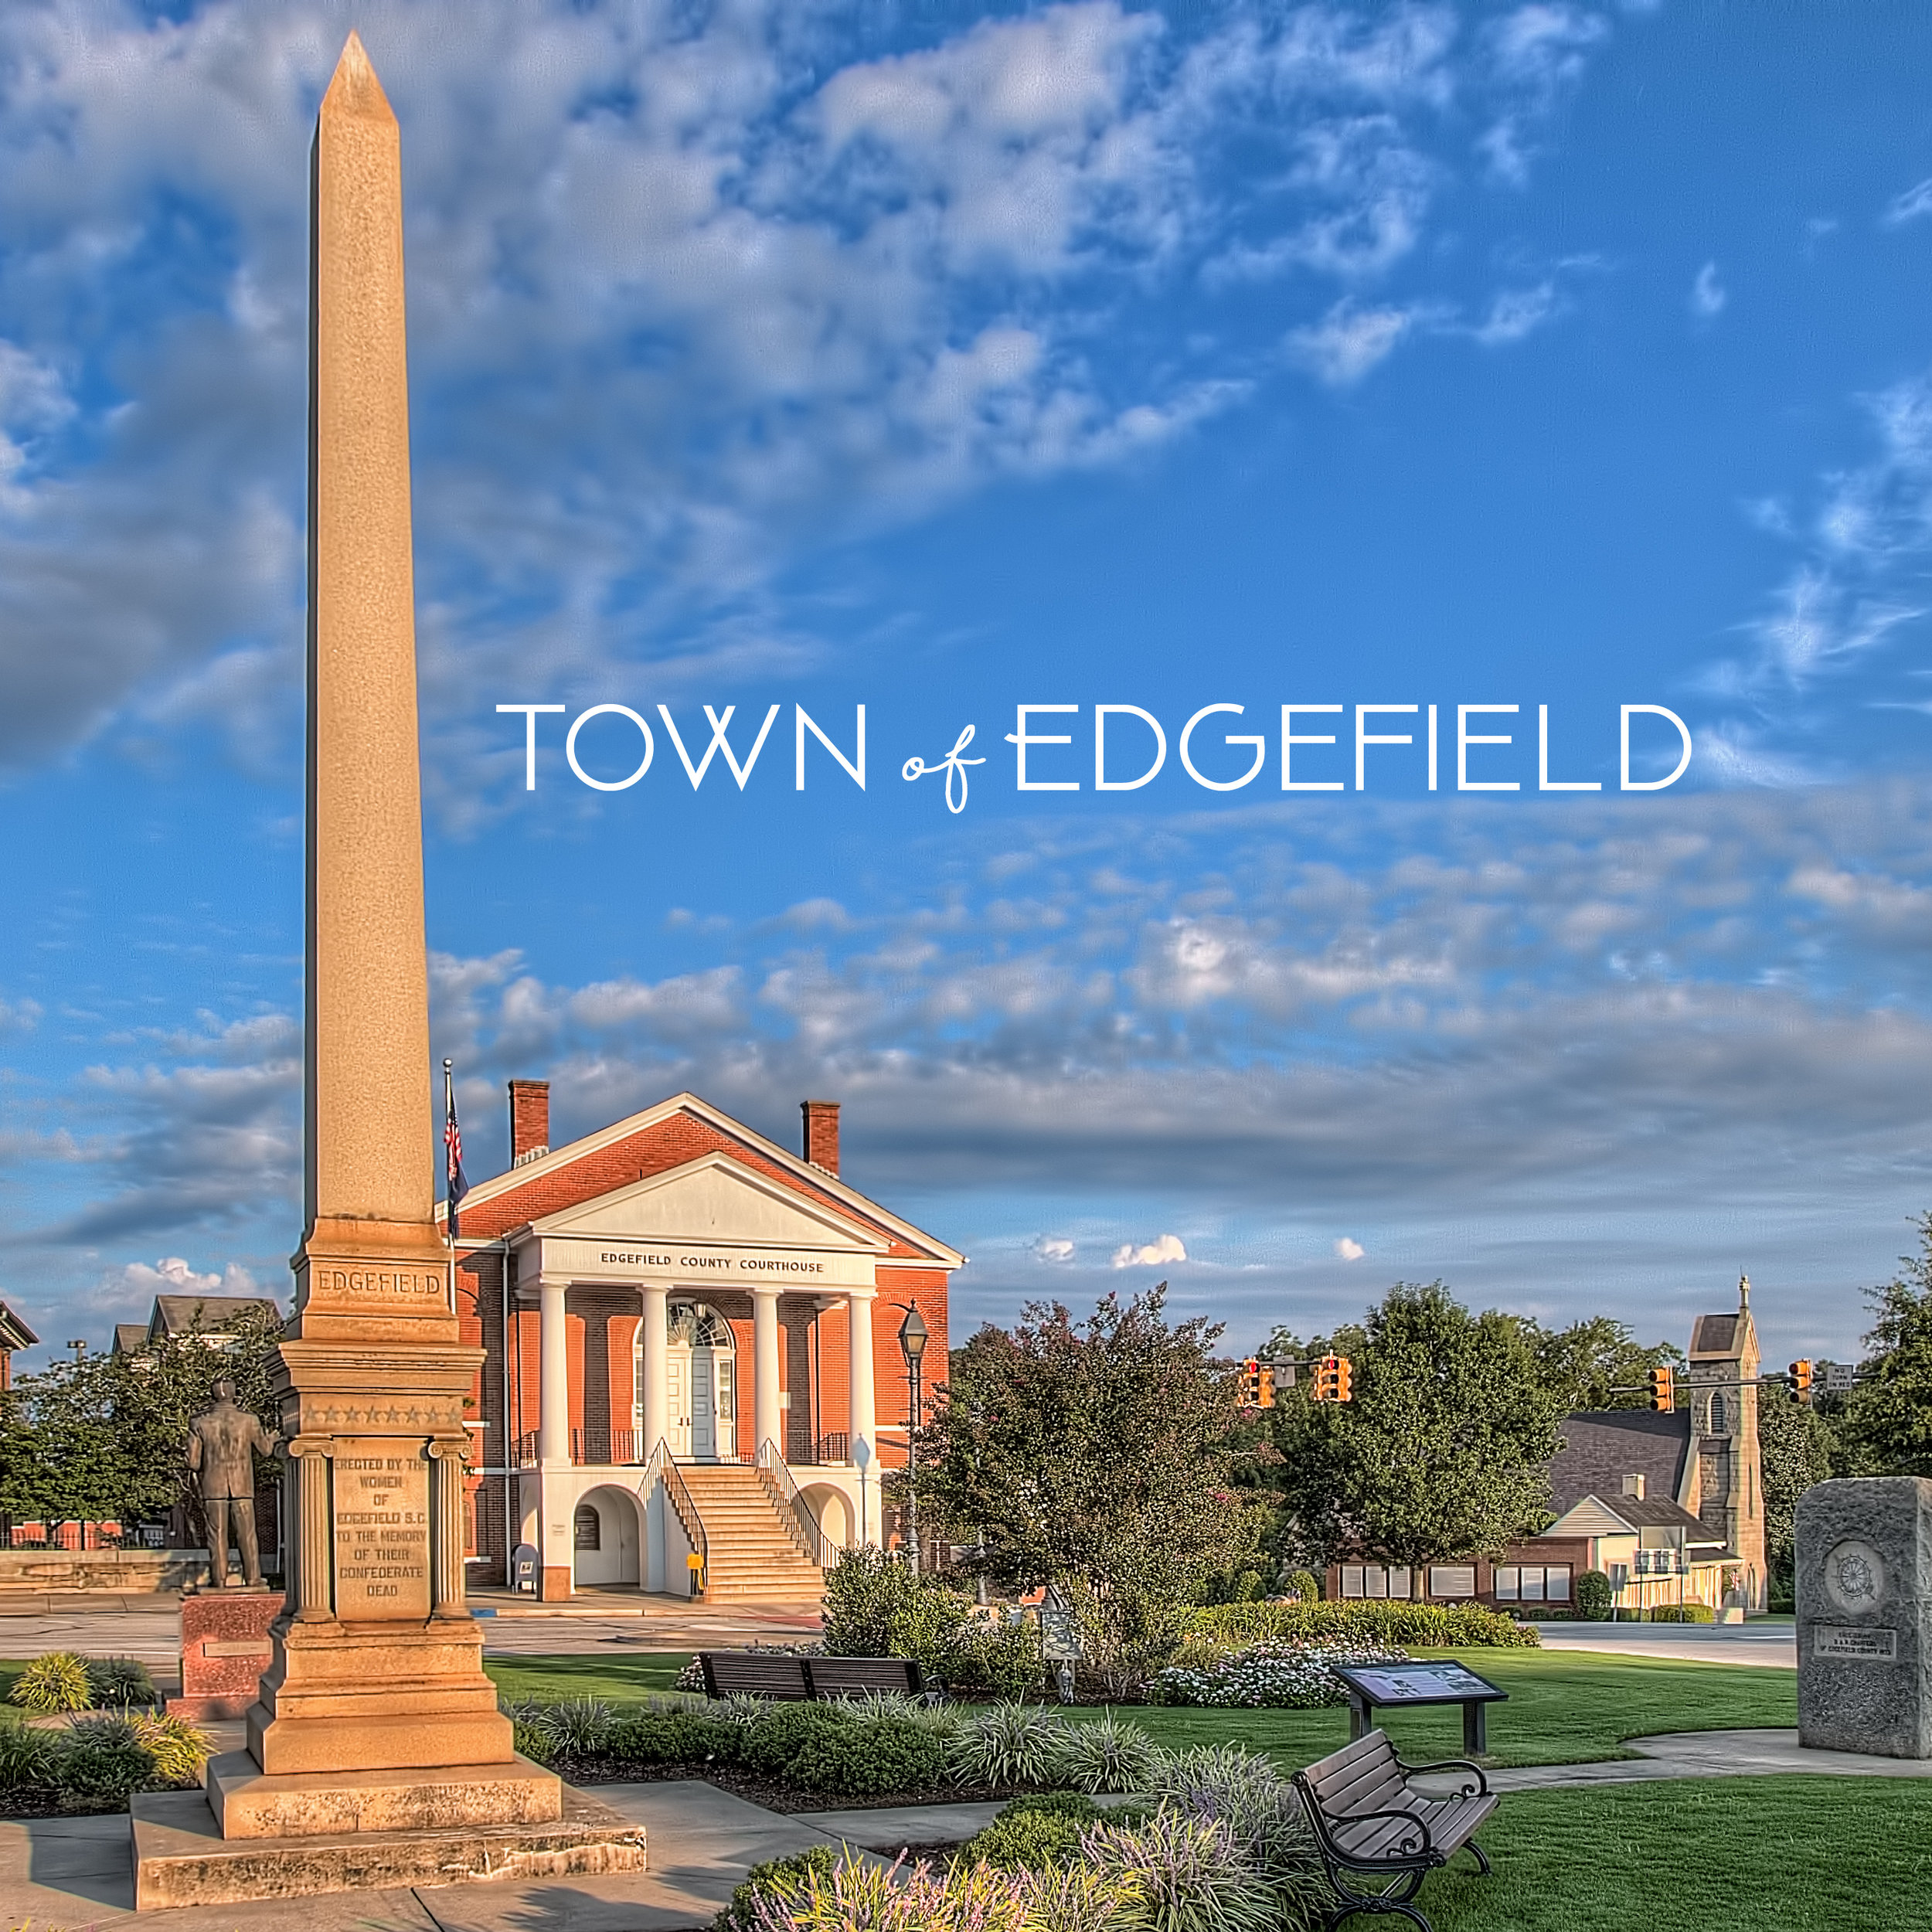 Town of Edgefield